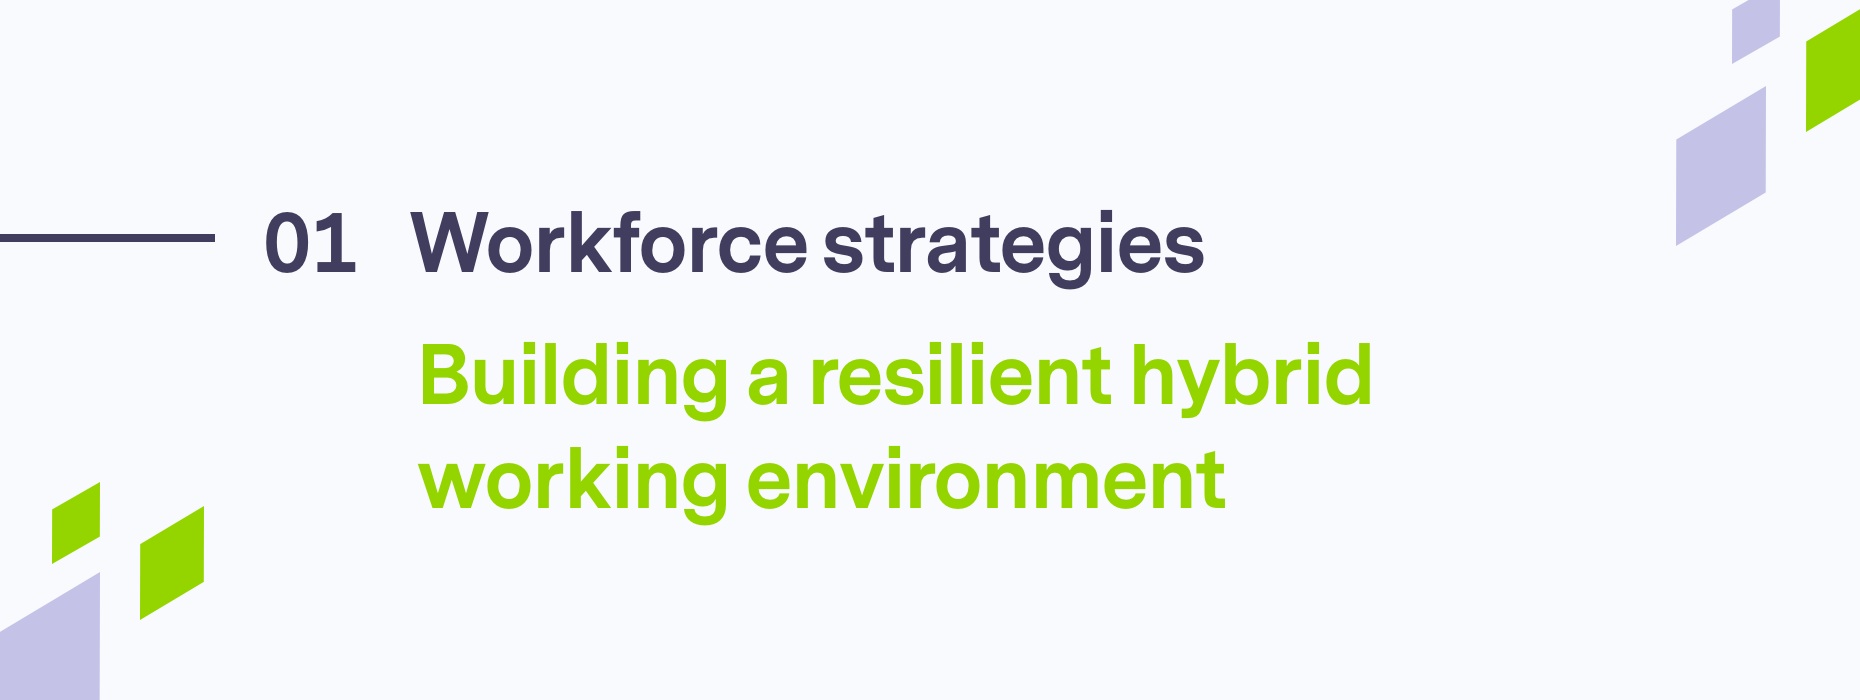 Building a resilient hybrid working environment